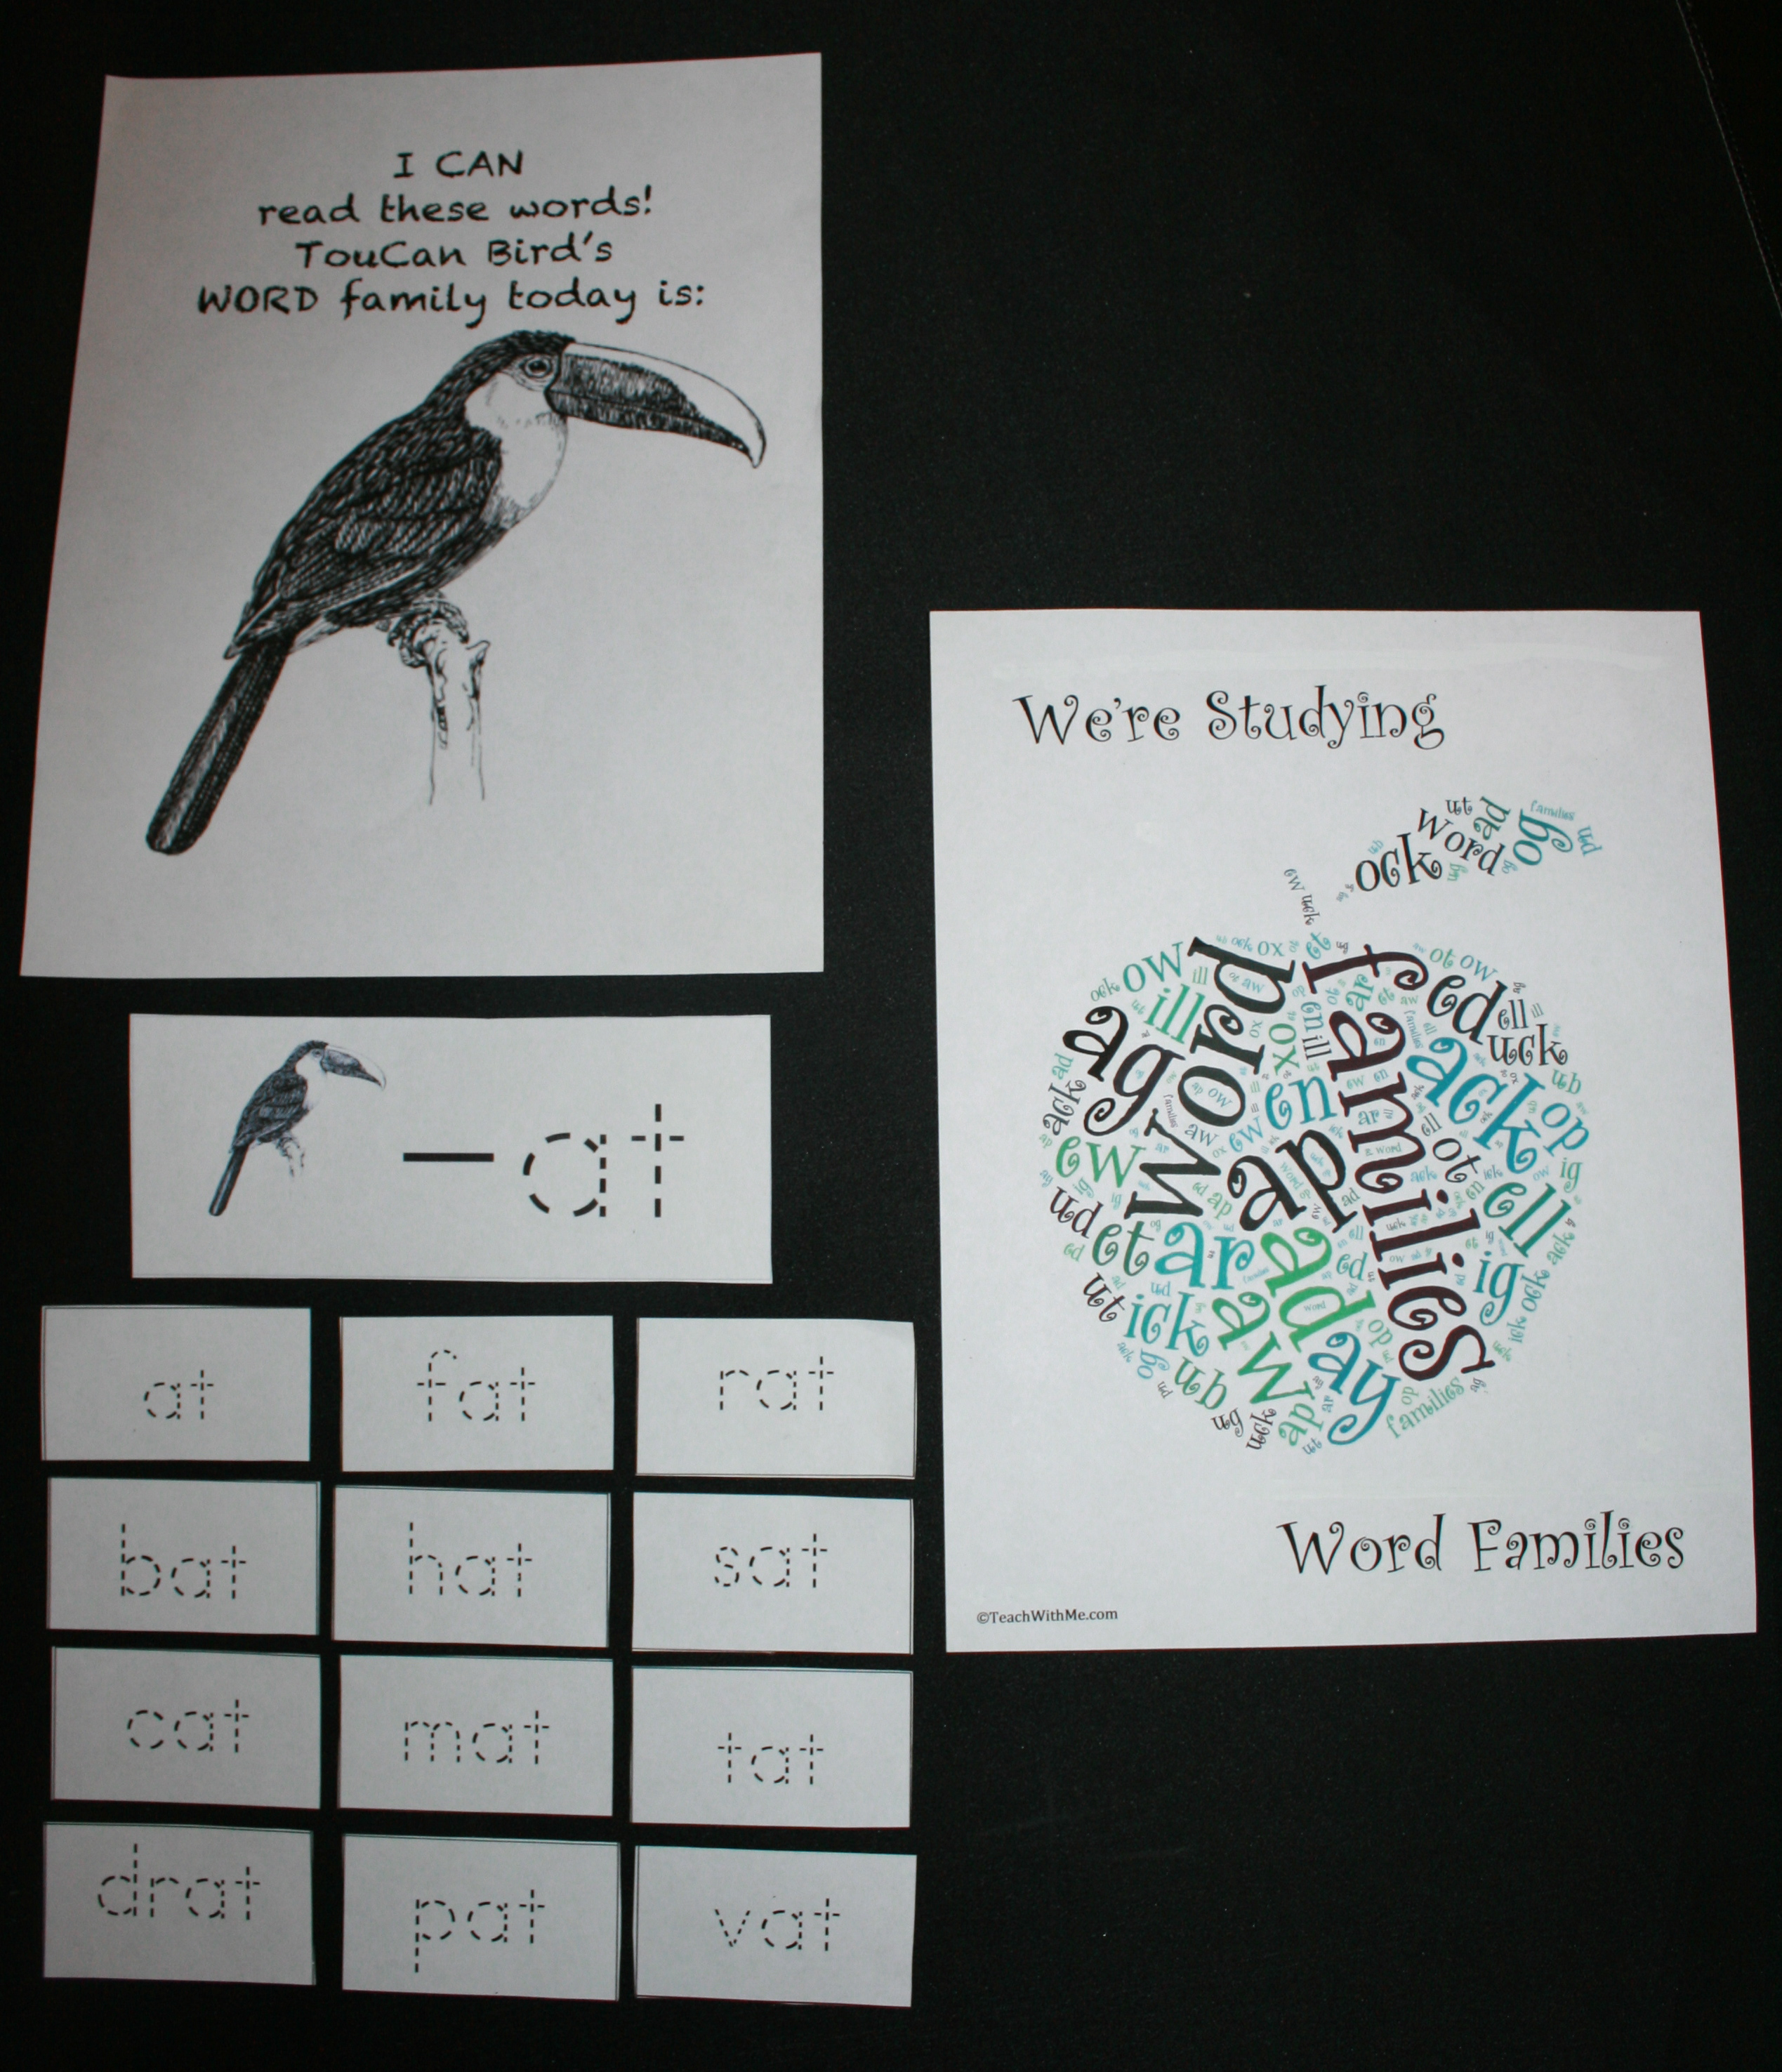 word families, word family activities, word family ideas, word family word cards, word family posters, word family flashcards, word family worksheets, word family lessons, word family booklets, word family word wall, word family folders, word family anchor charts, word family games, word family word art, word family magic word wands,